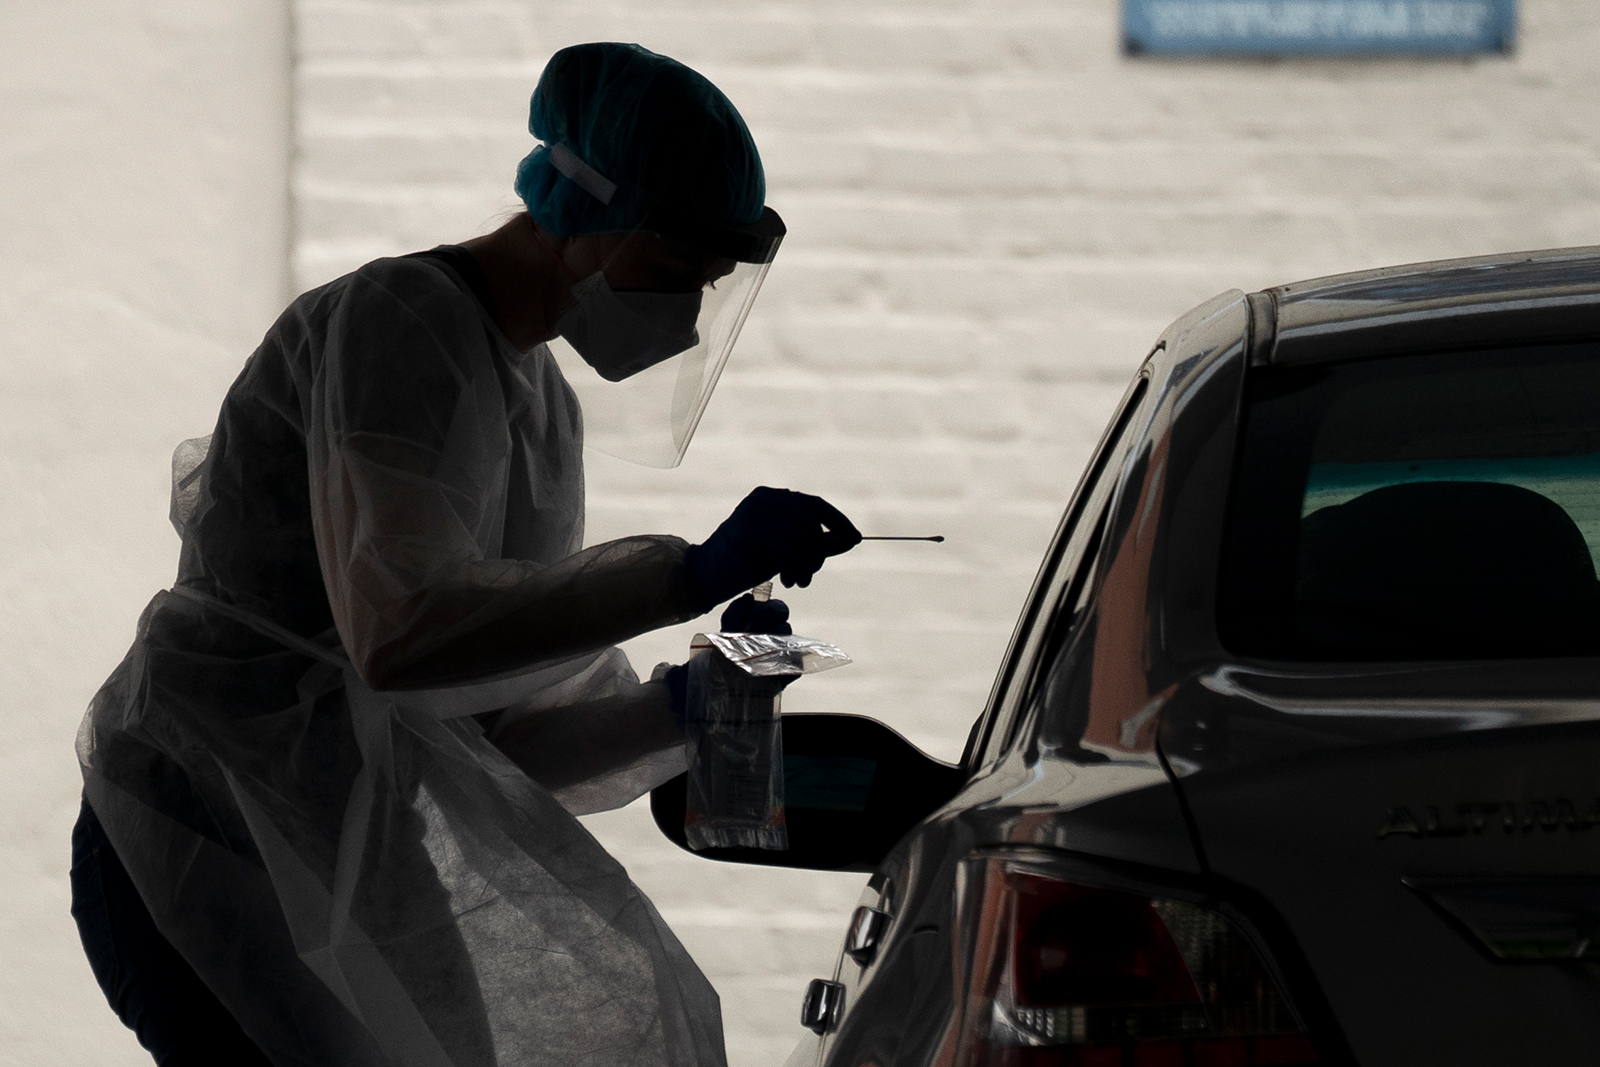 A medical professional administers a coronavirus test at a drive-thru testing site run by George Washington University Hospital in Washington, on May 26.